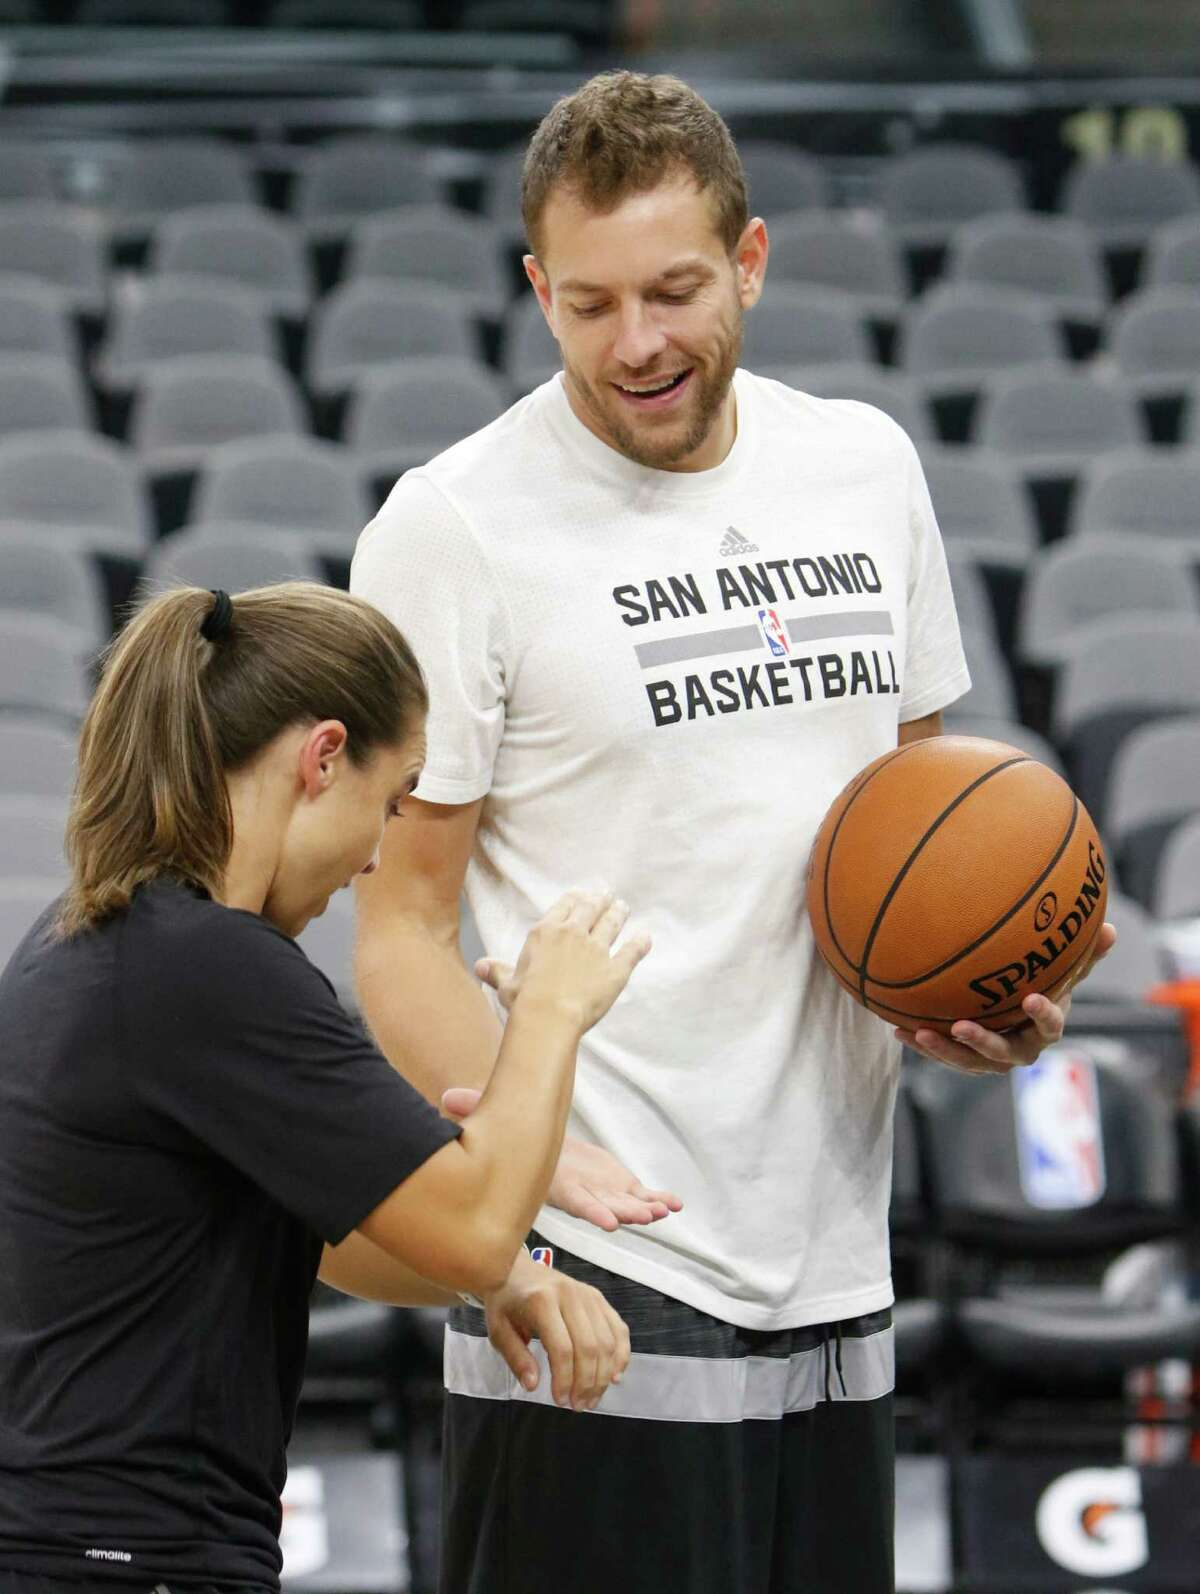 SAN ANTONIO,TX - NOVEMBER 01: David Lee #10 of the San Antonio Spurs is greeted by Assistant coach Becky Hammon before the game between Utah Jazz and the San Antonio Spurs at AT&T Center on November 1, 2016 in San Antonio, Texas. NOTE TO USER: User expressly acknowledges and agrees that , by downloading and or using this photograph, User is consenting to the terms and conditions of the Getty Images License Agreement.